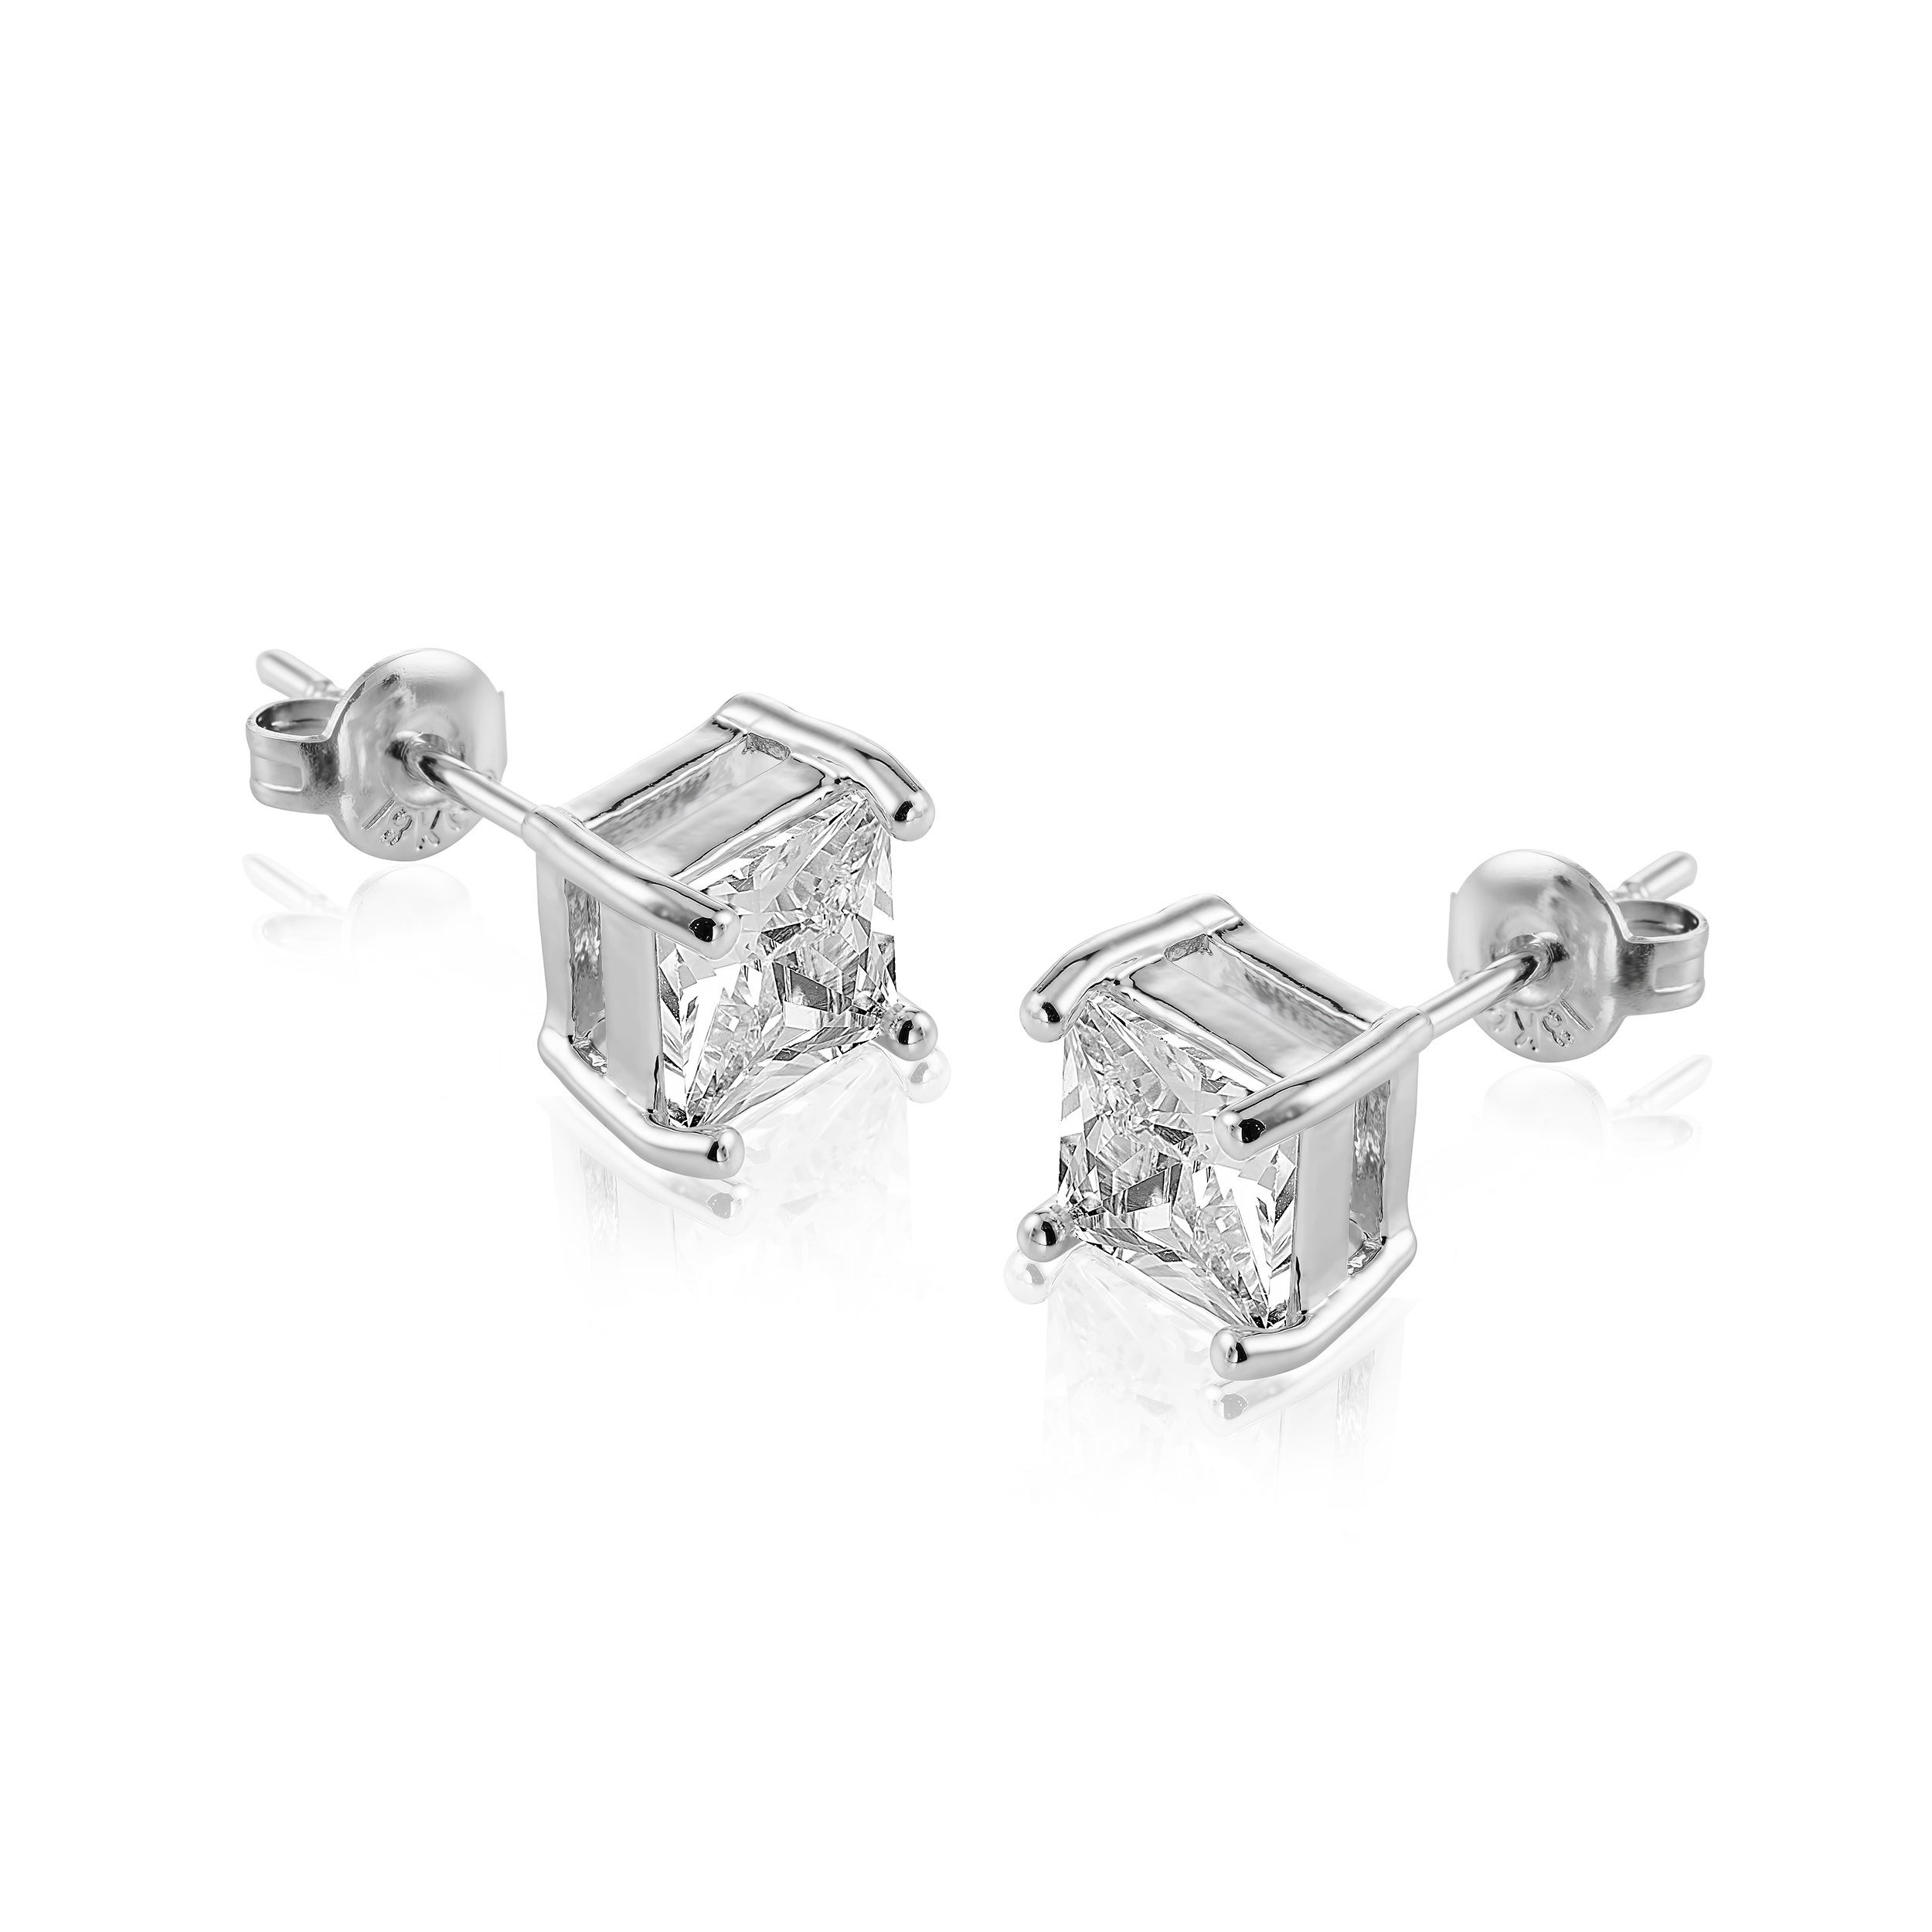 Square Cut 18k White Gold Plated Earrings Made With Cubic Zirconia